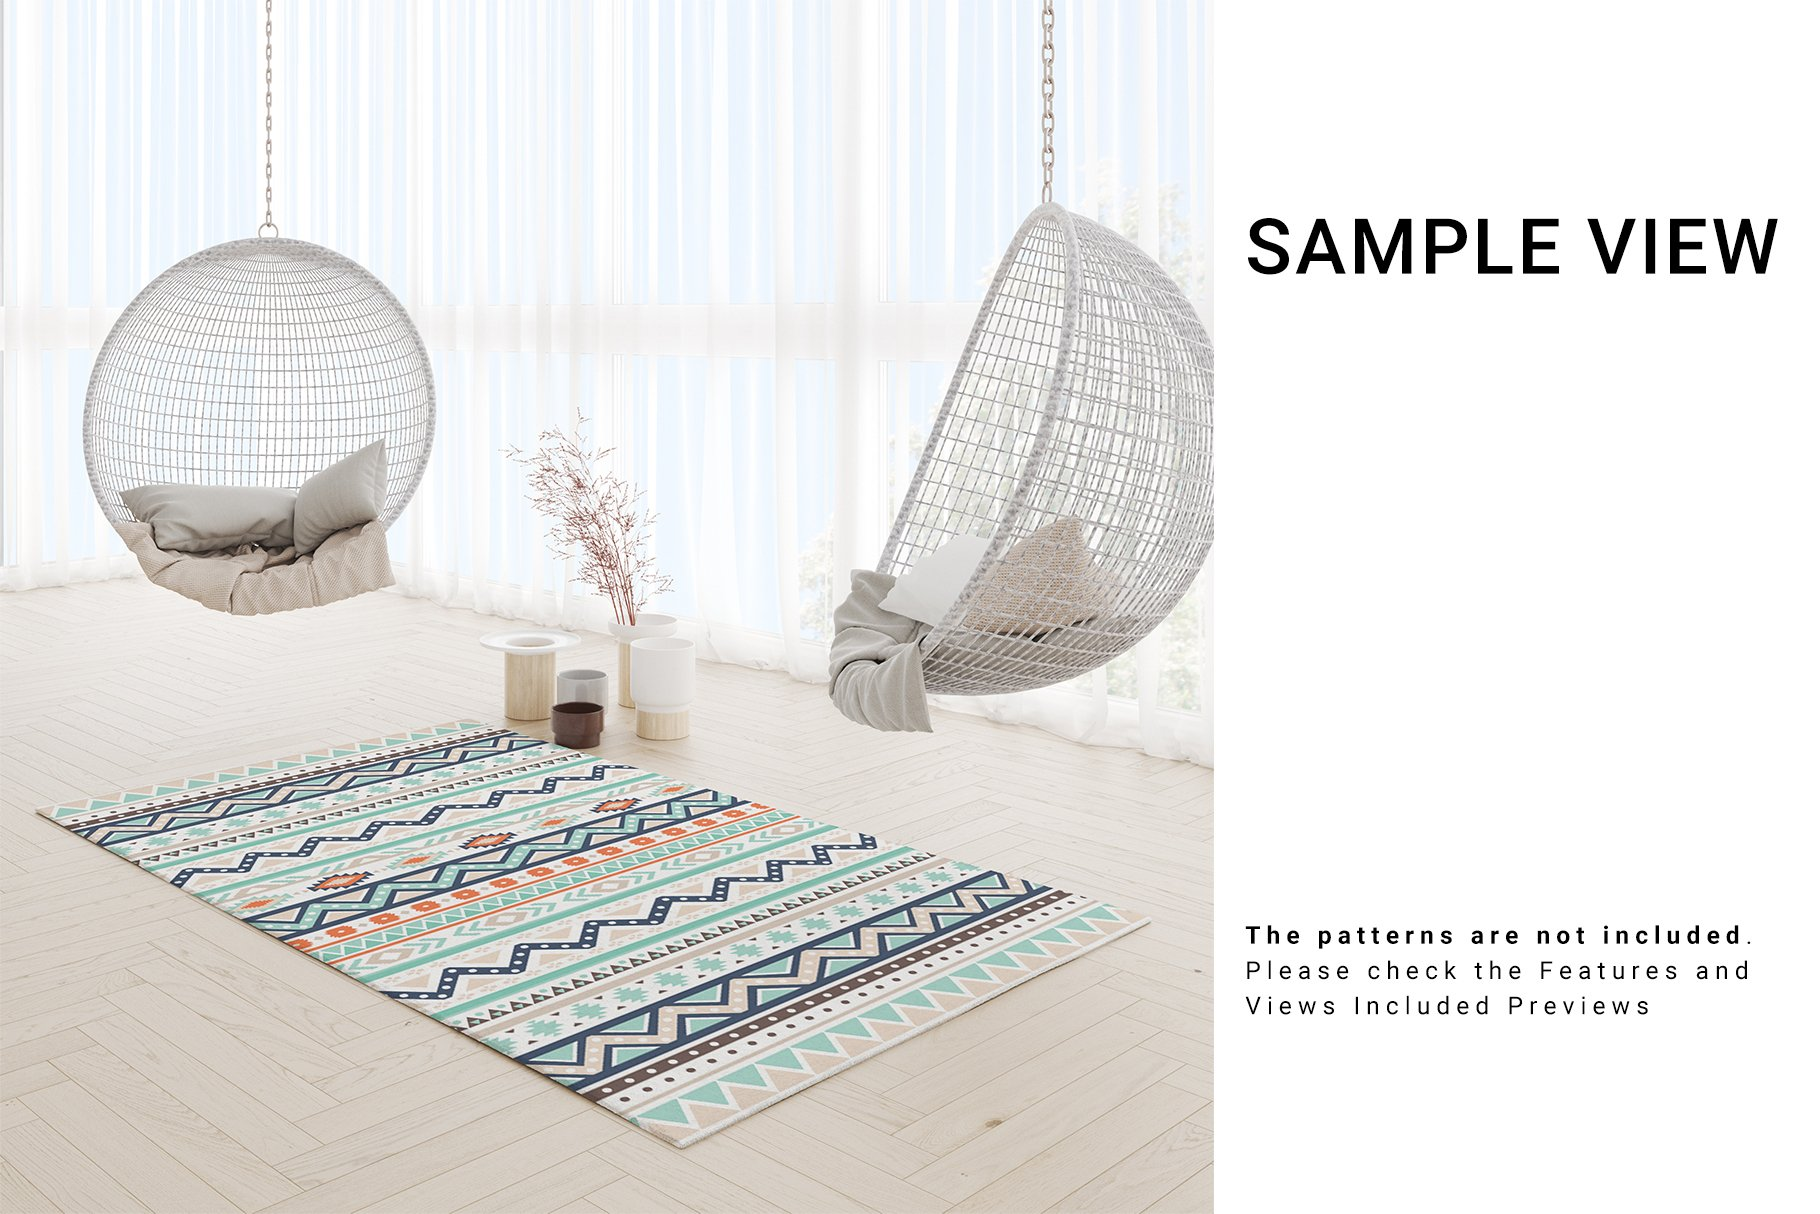 3 Types of Carpets in Living Room Mockup Set example image 8